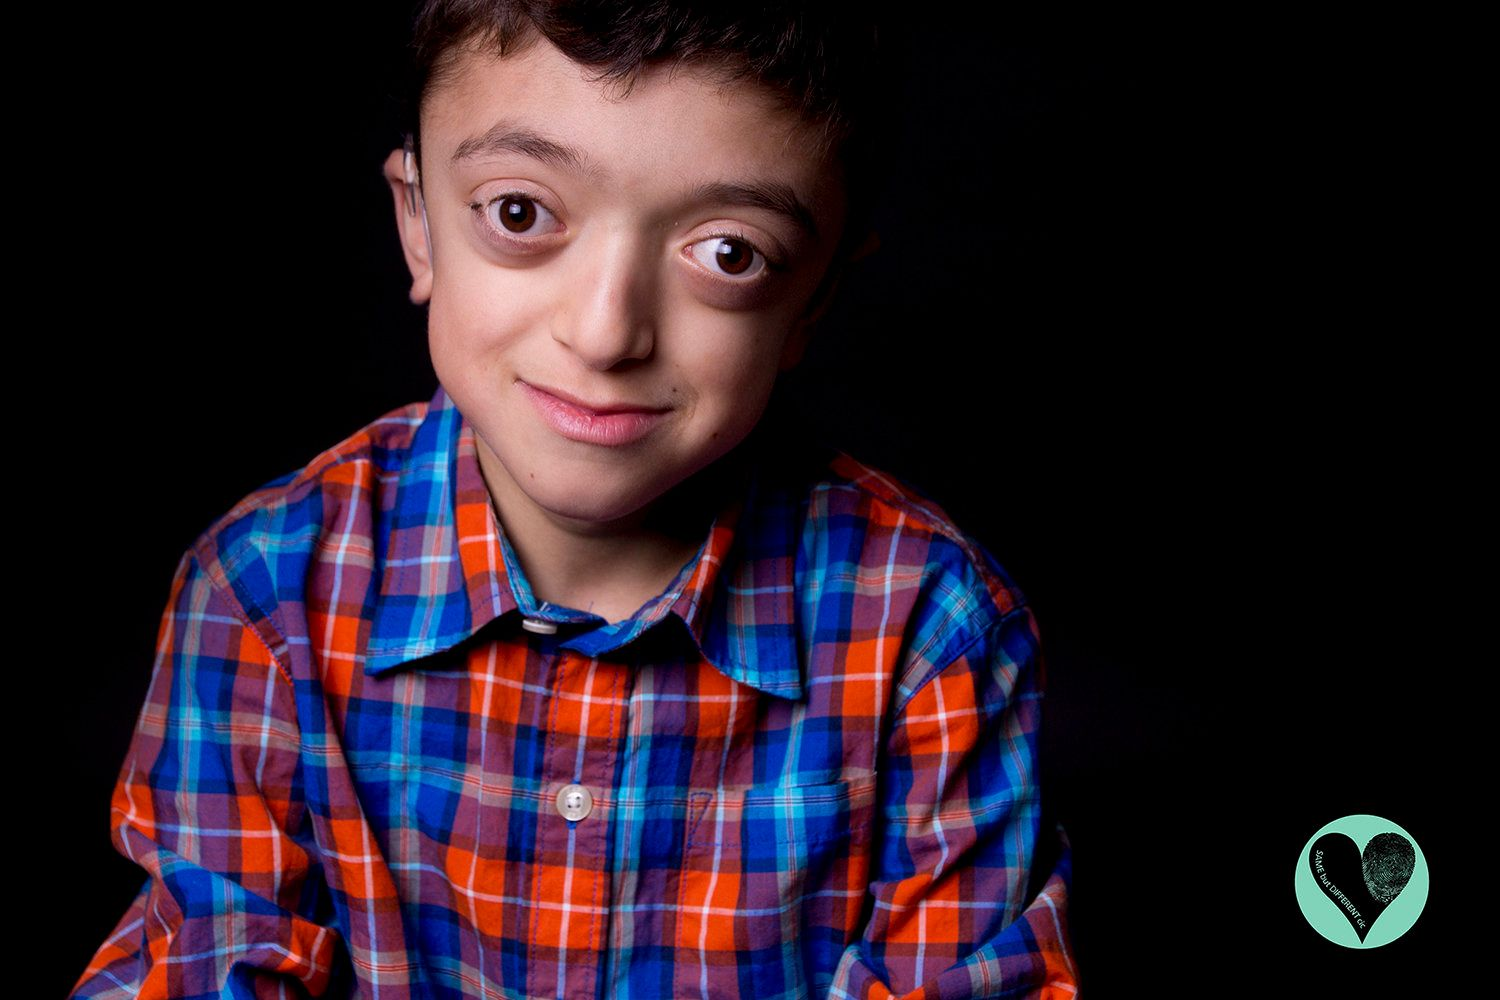 Matthew is a super energetic, positive kid who loves Real Madrid andManchester United. He has Crouzon syndrome and has